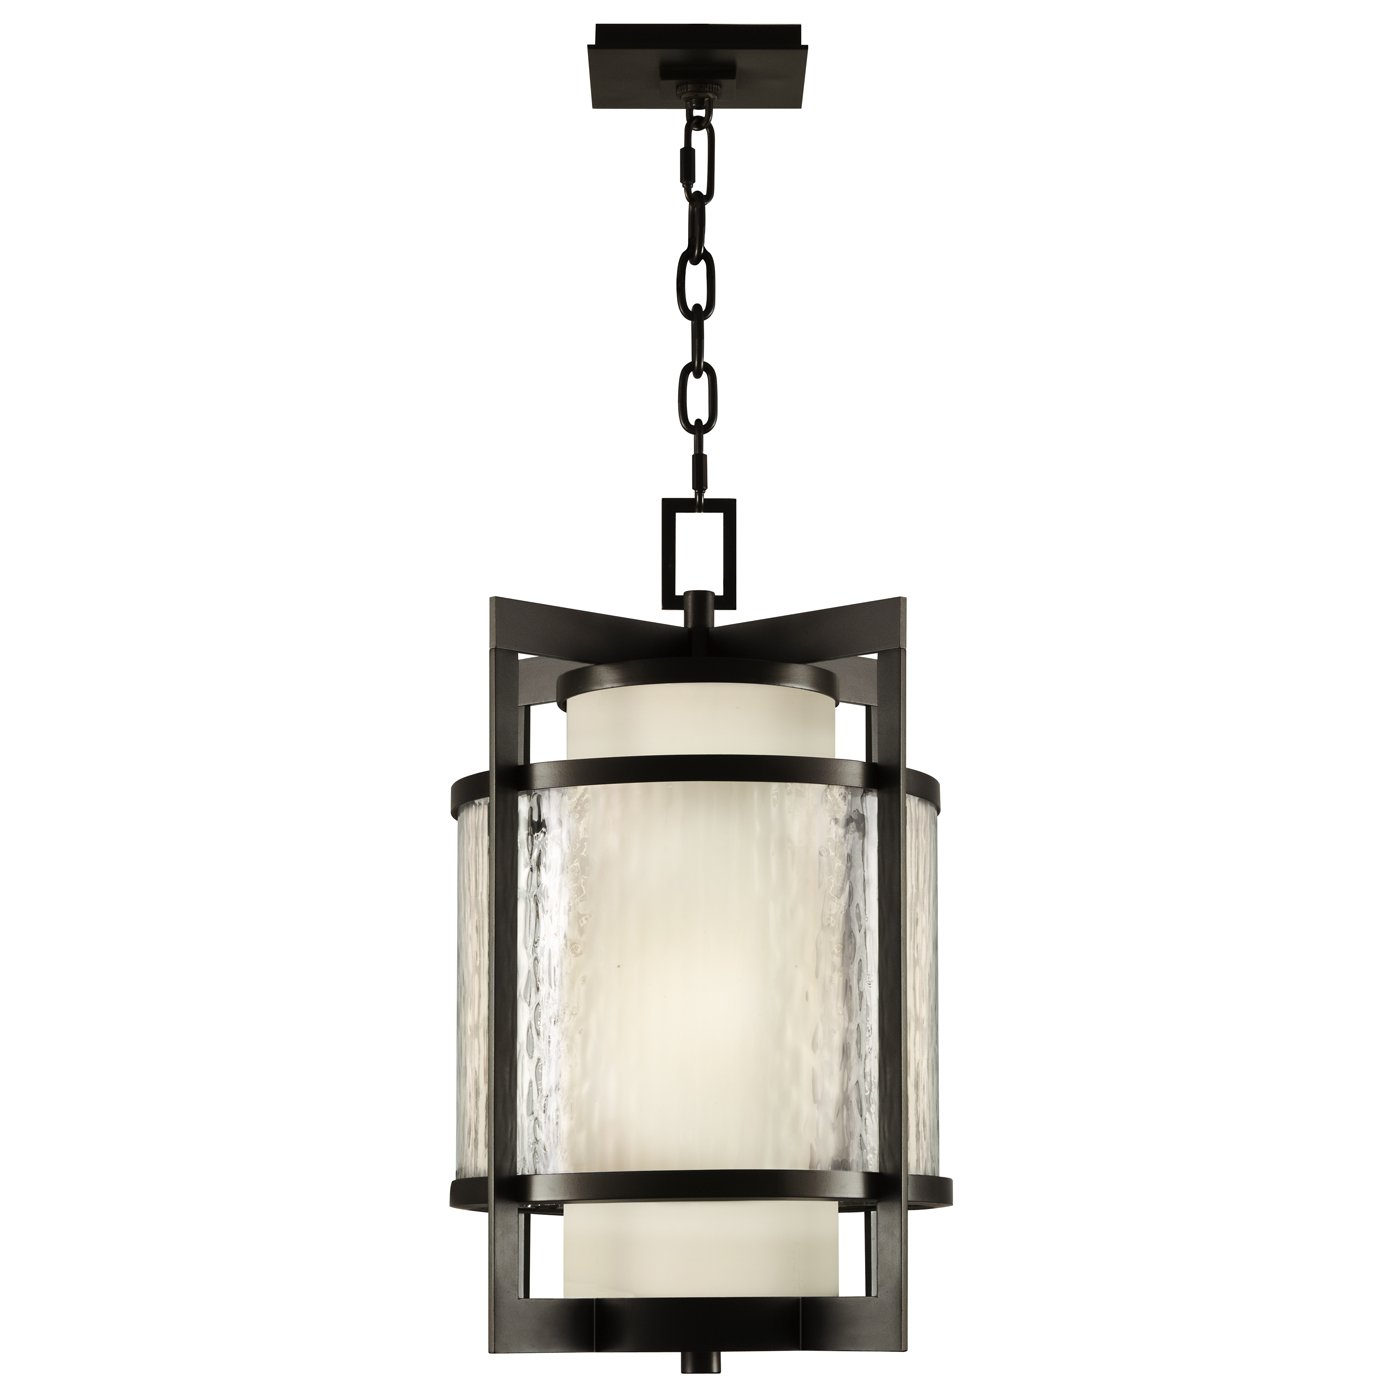 Fine Art Lamps 817482, Singapore Moderne Outdoor Ceiling Light Fluorescent, Dark Bronze